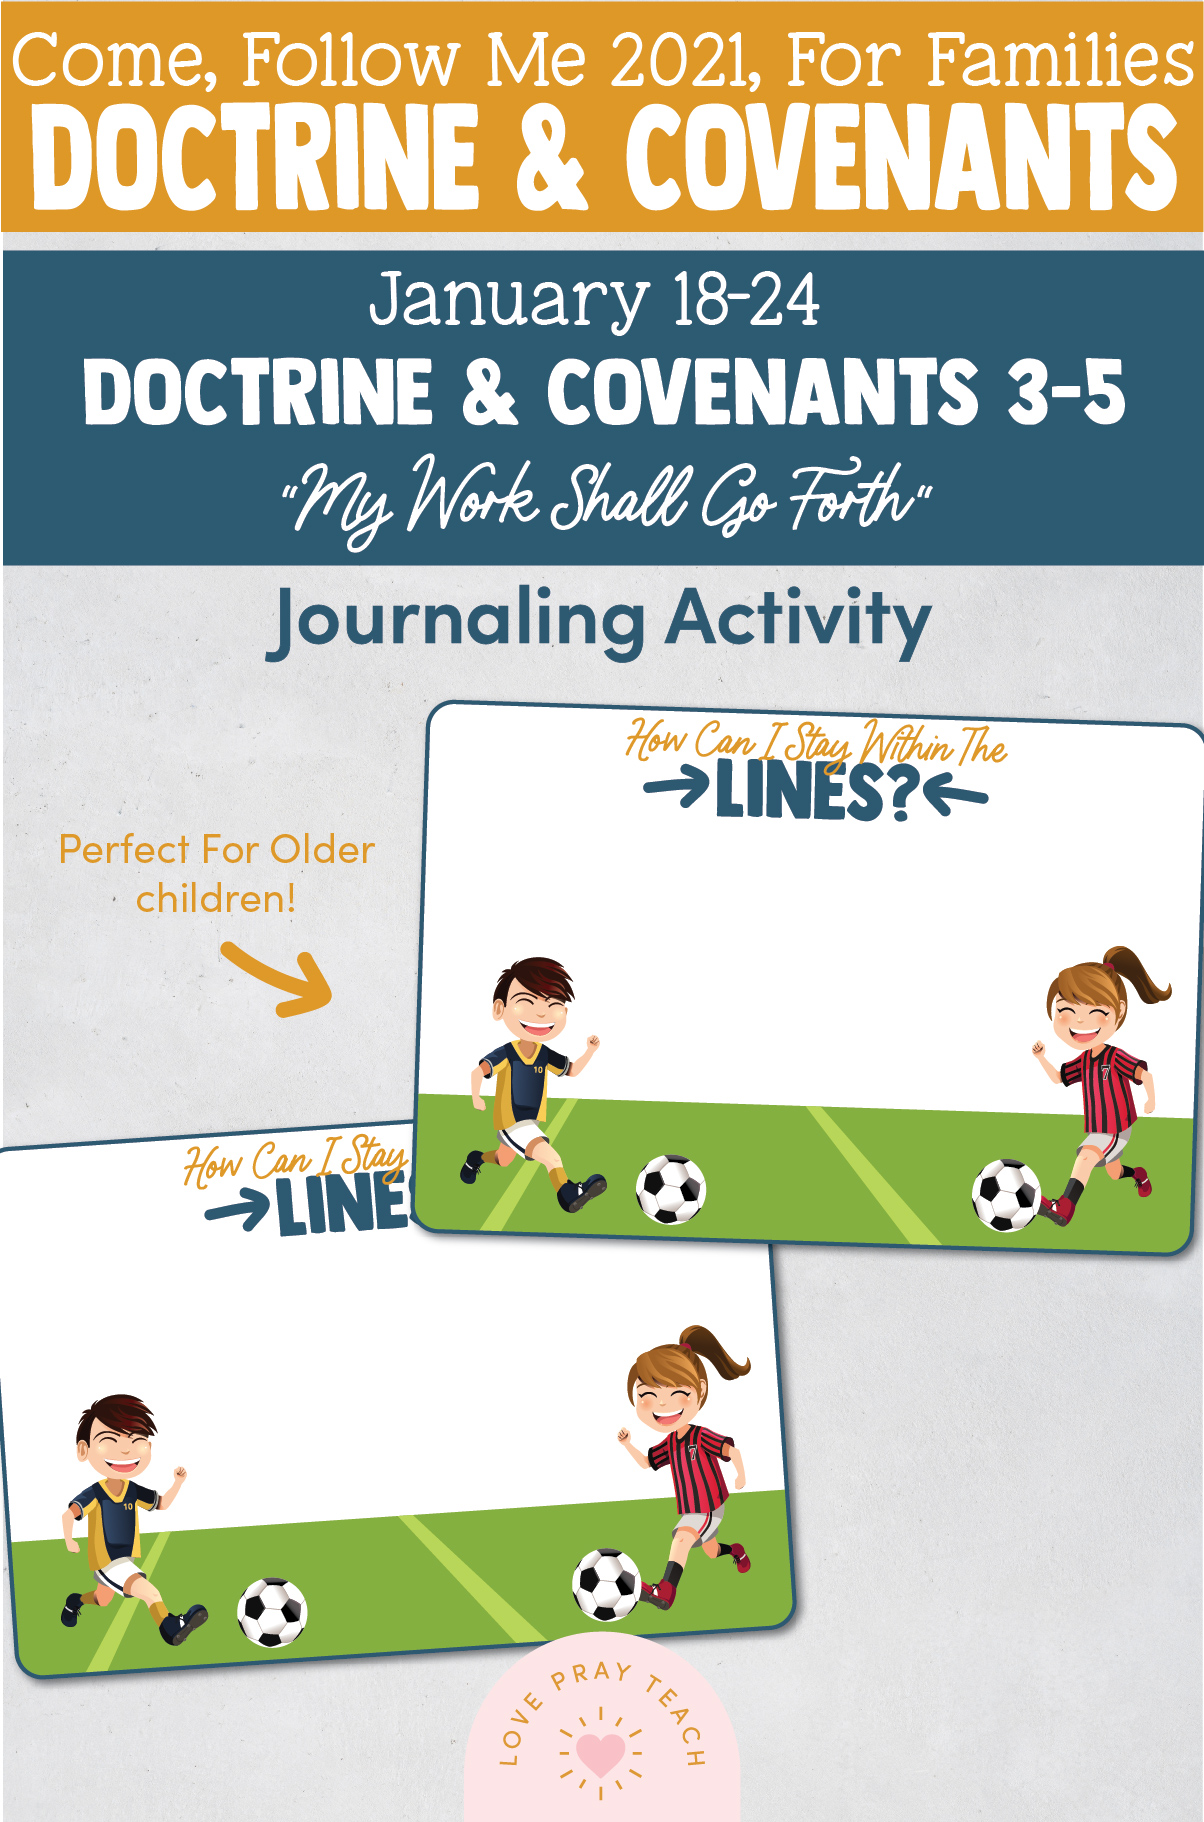 """Come, Follow Me—For Individuals and Families: Doctrine And Covenants 2021, January Week 4: January 18-24, Doctrine and Covenants 3-5,""""My Work Shall Go Forth"""""""